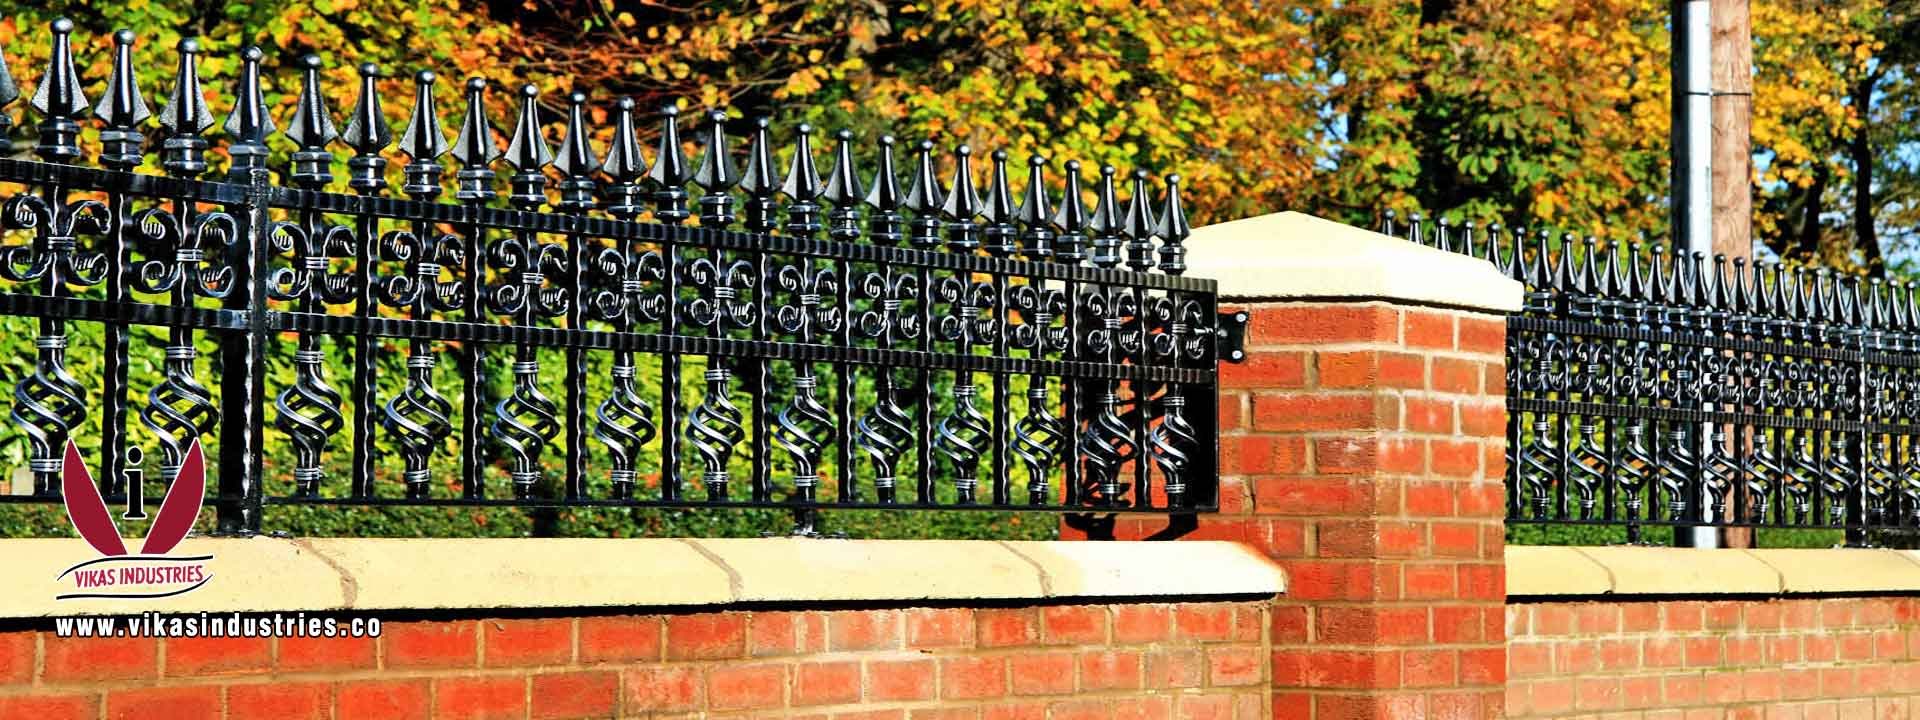 wrought iron hardware gate grill parts fencing parts railings hardware products ornamental iron hardware parts manufacturers exporters in india punjab ludhiana